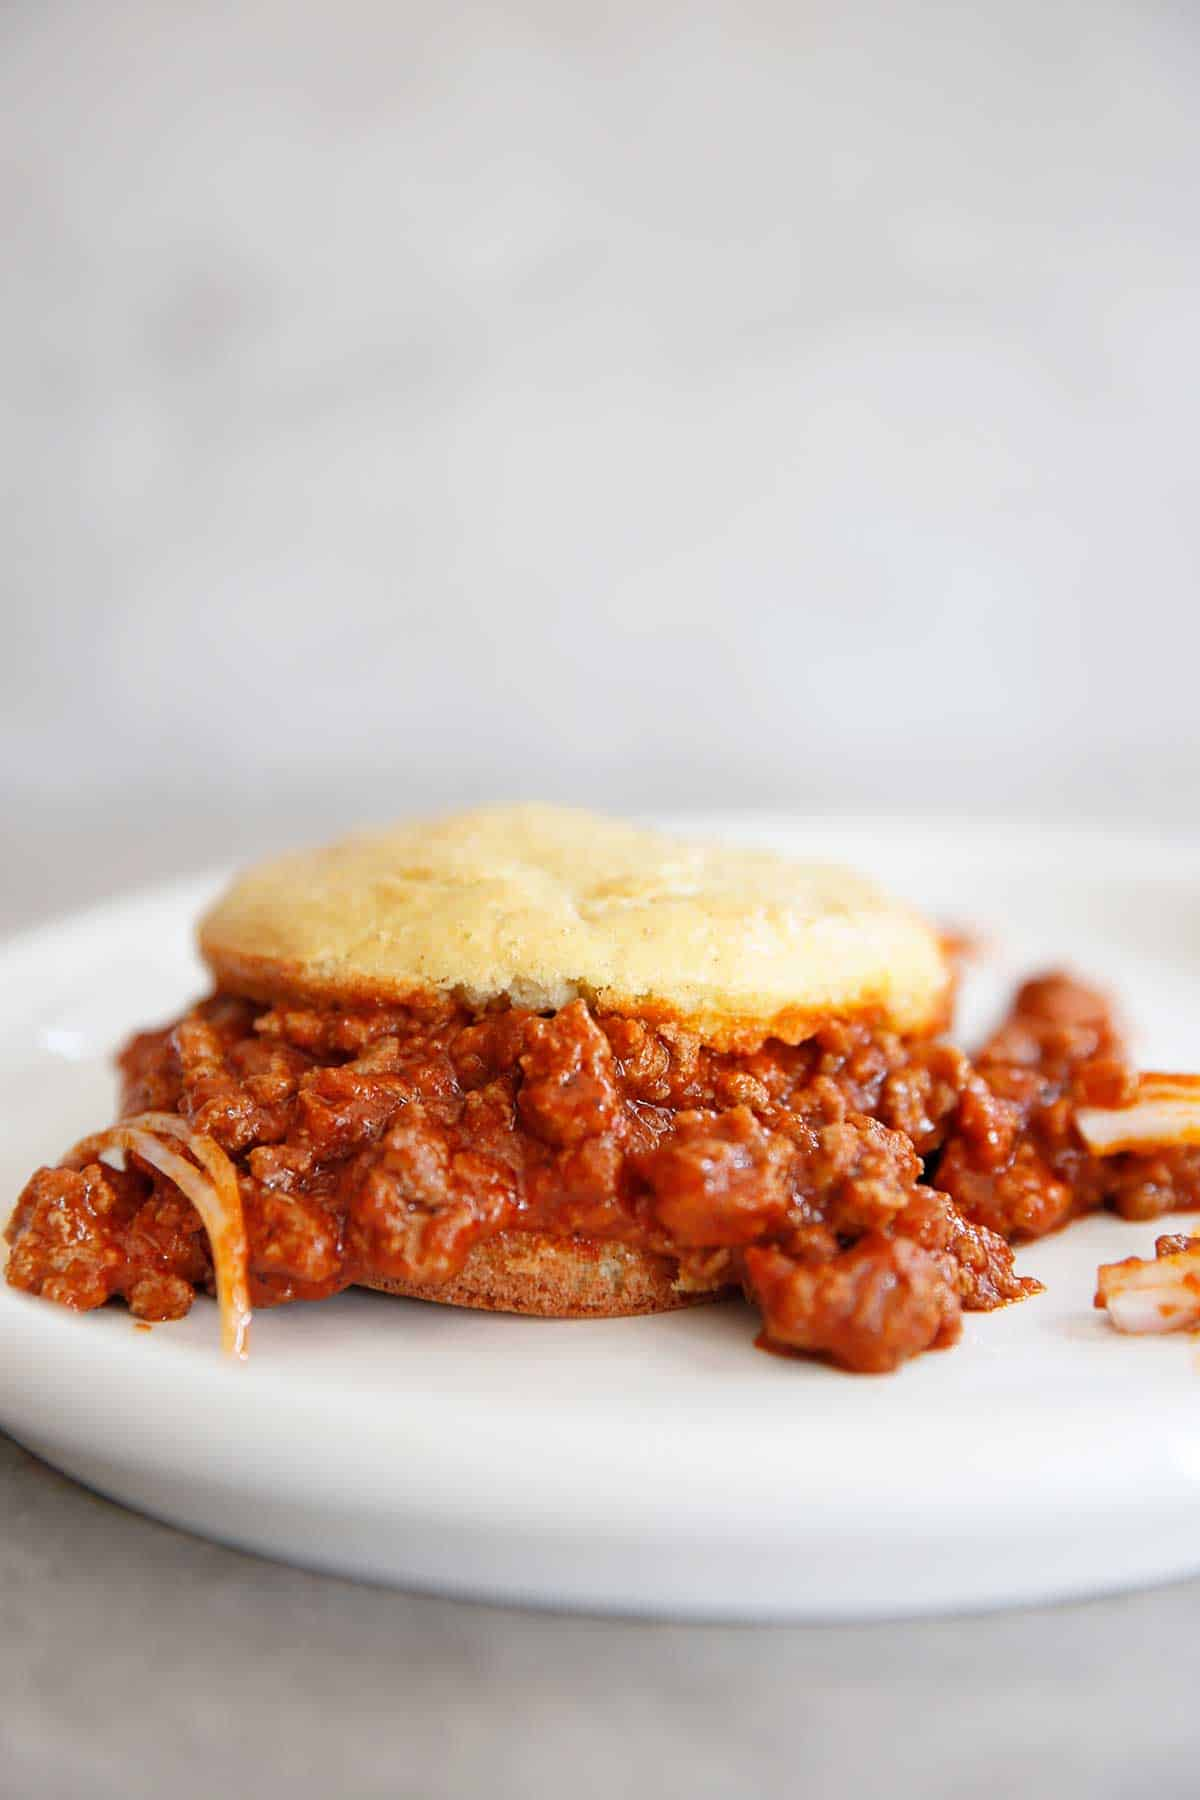 Paleo Sloppy Joes on a plate